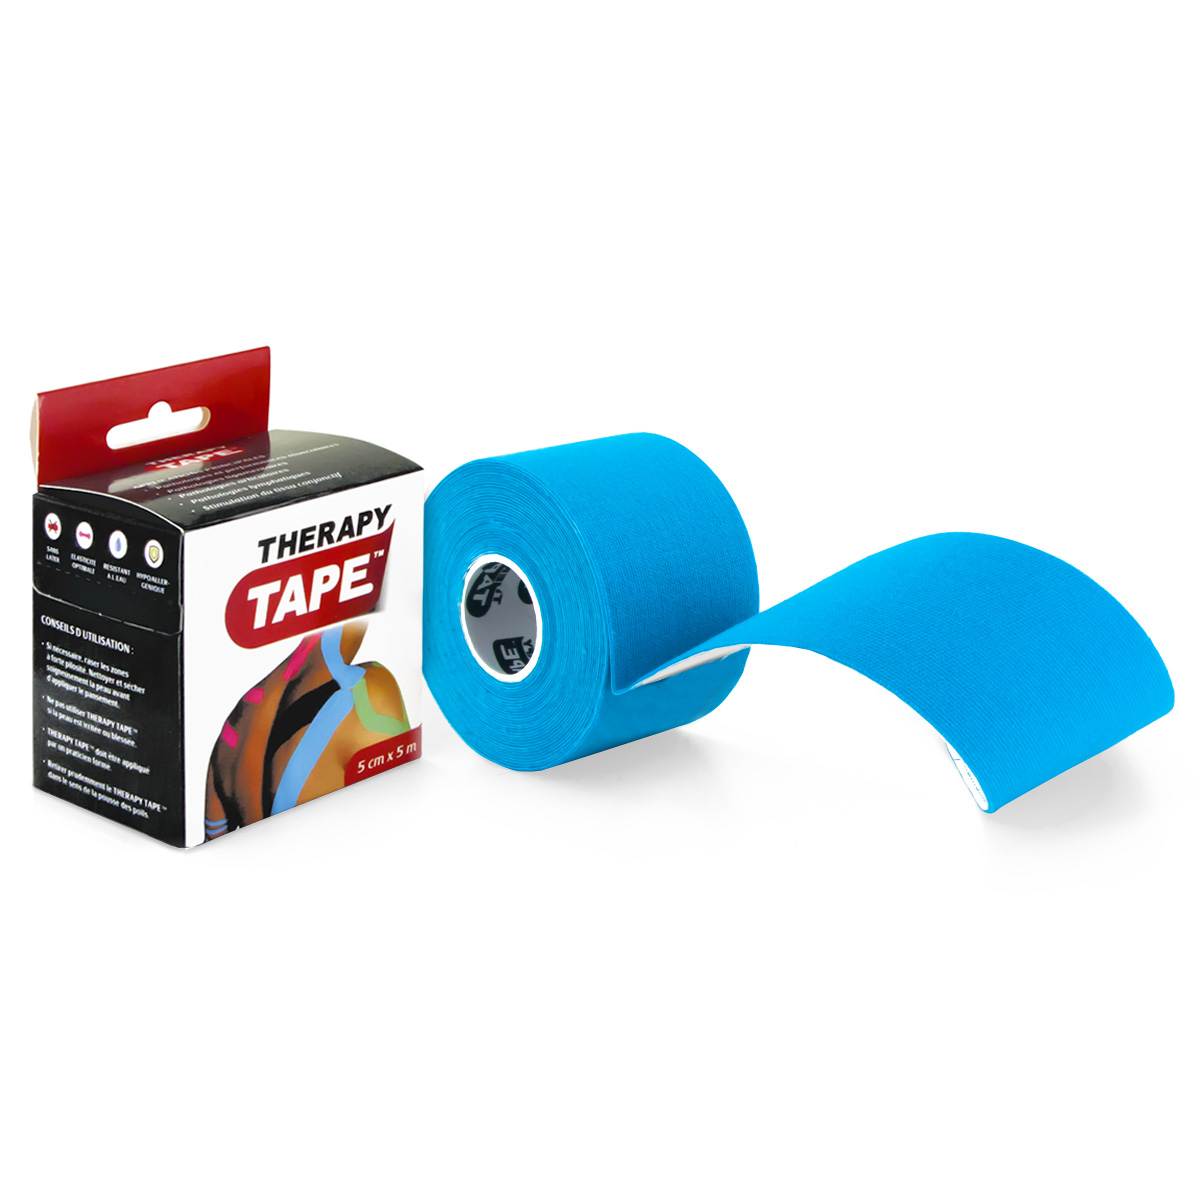 Therapy Tape - Rouleau Bleu - 5m